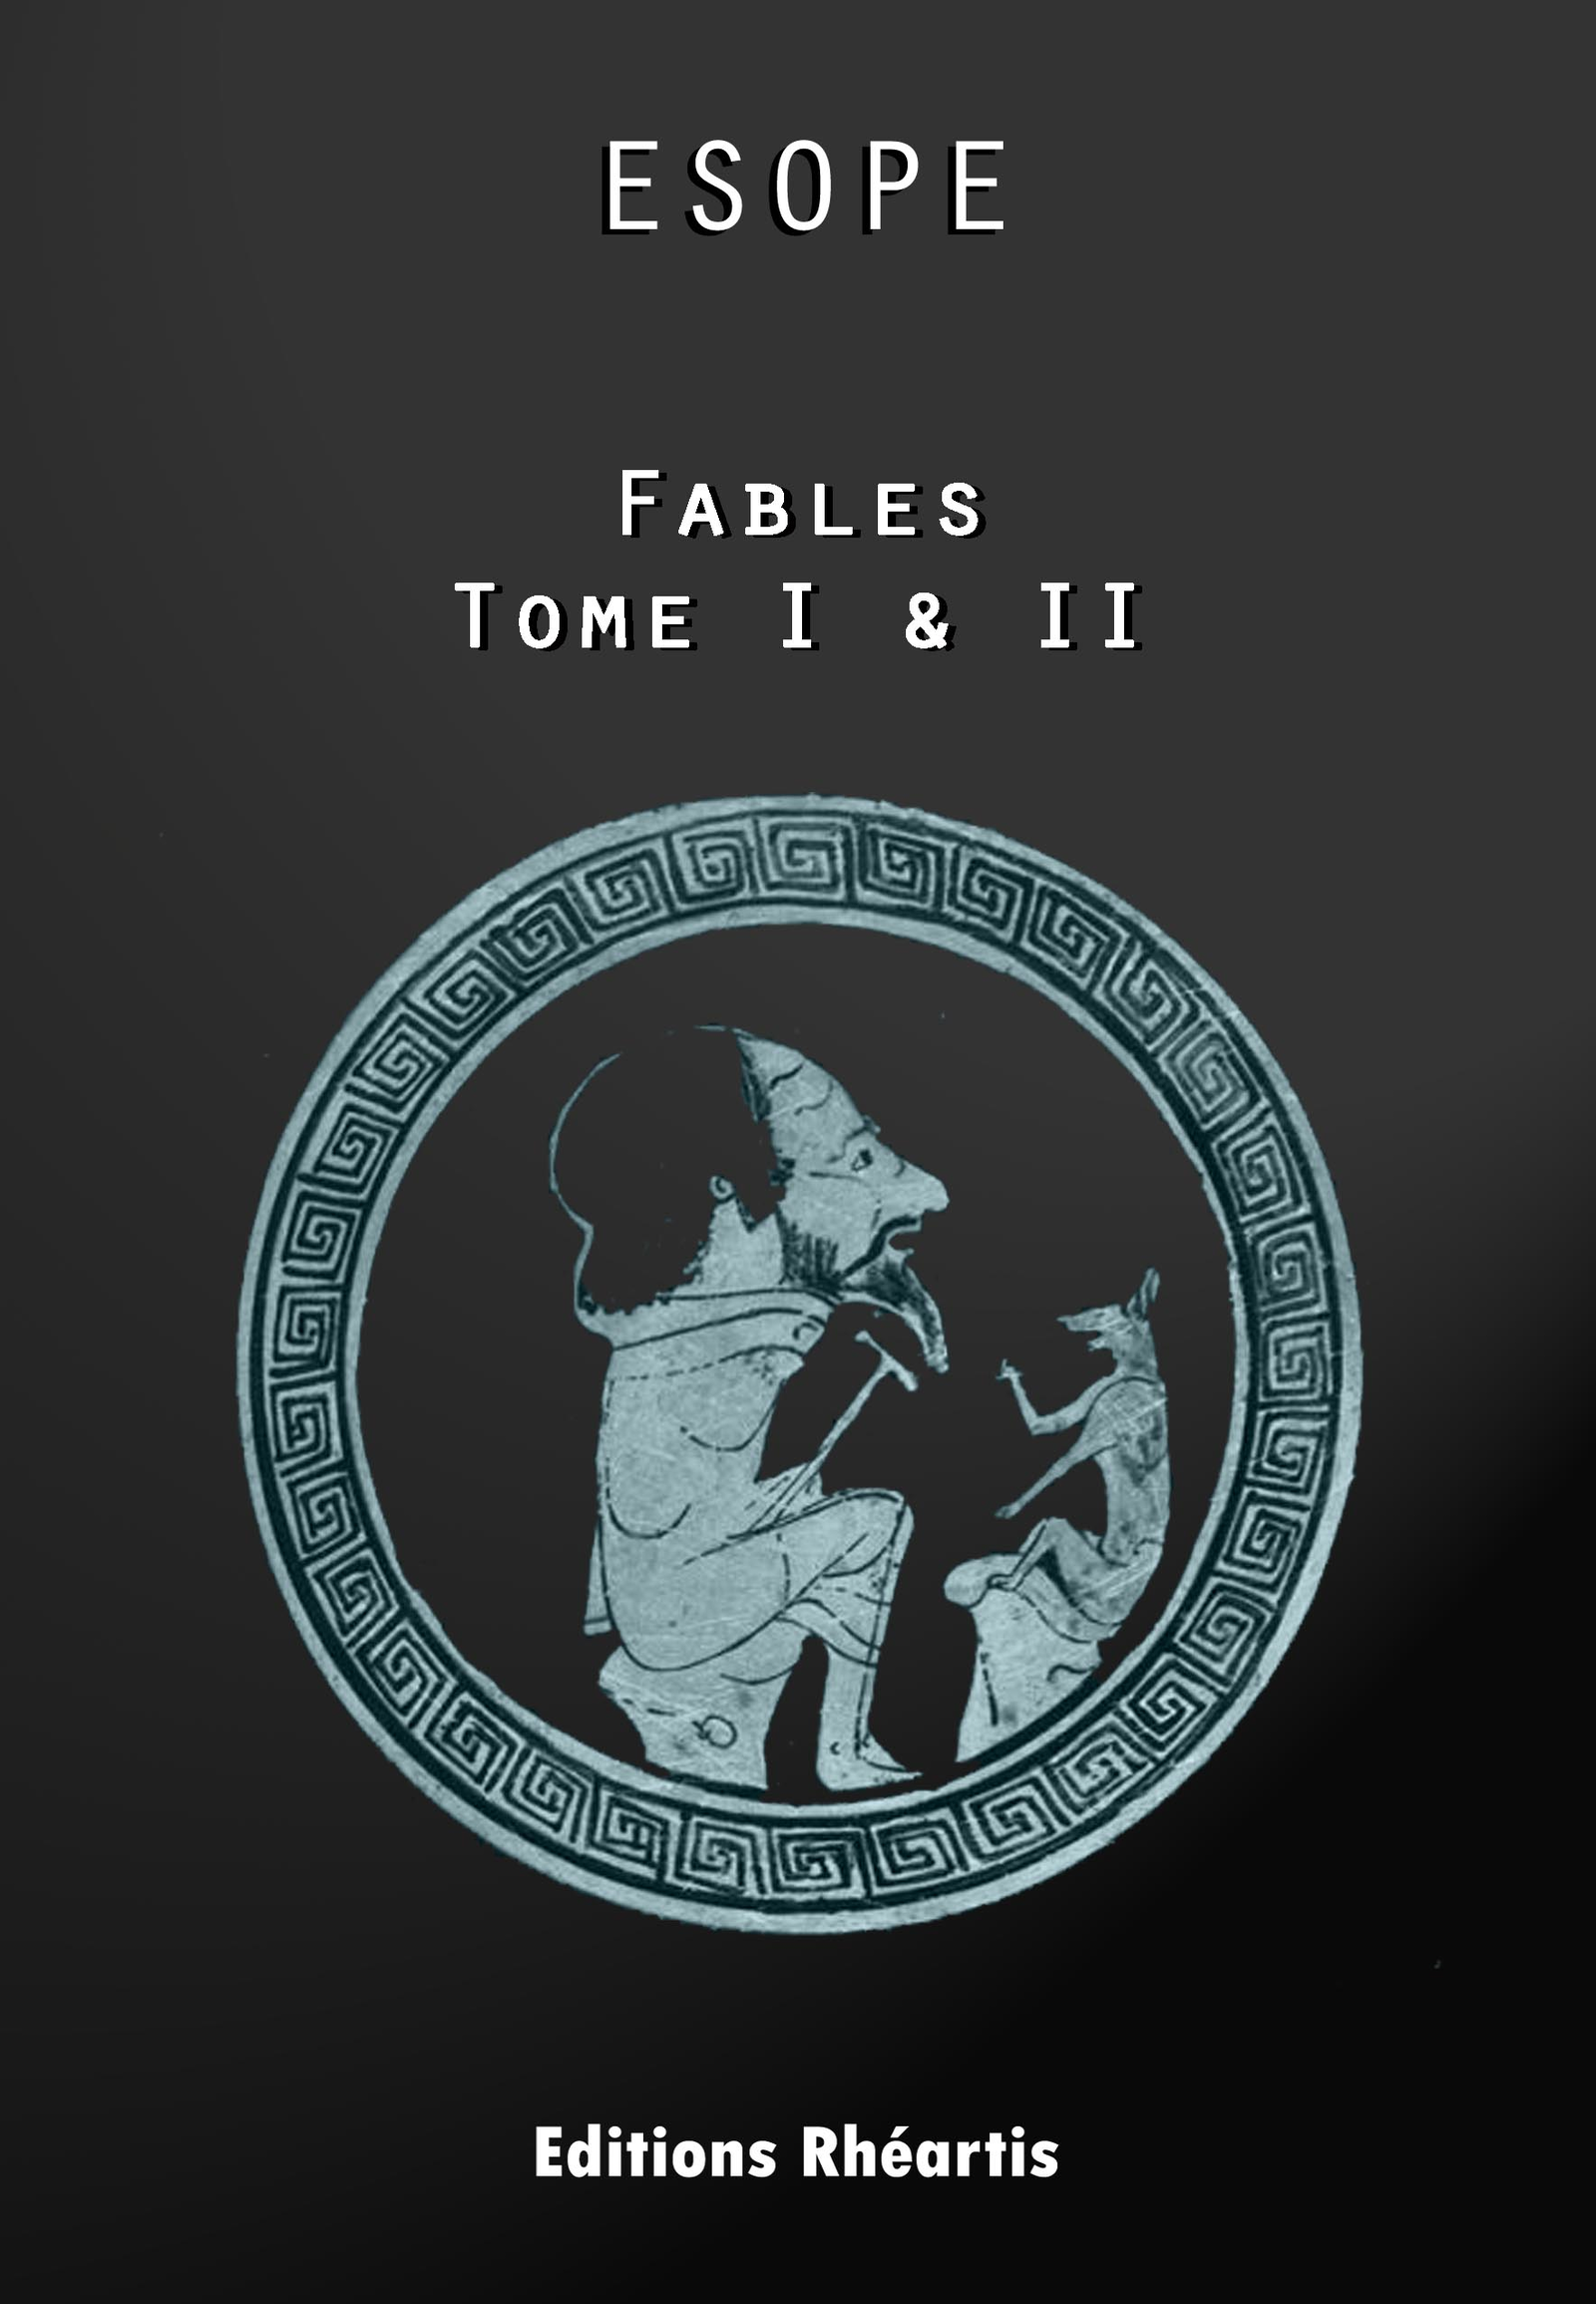 Esope - Fables - Oeuvres Complètes Tome I & II